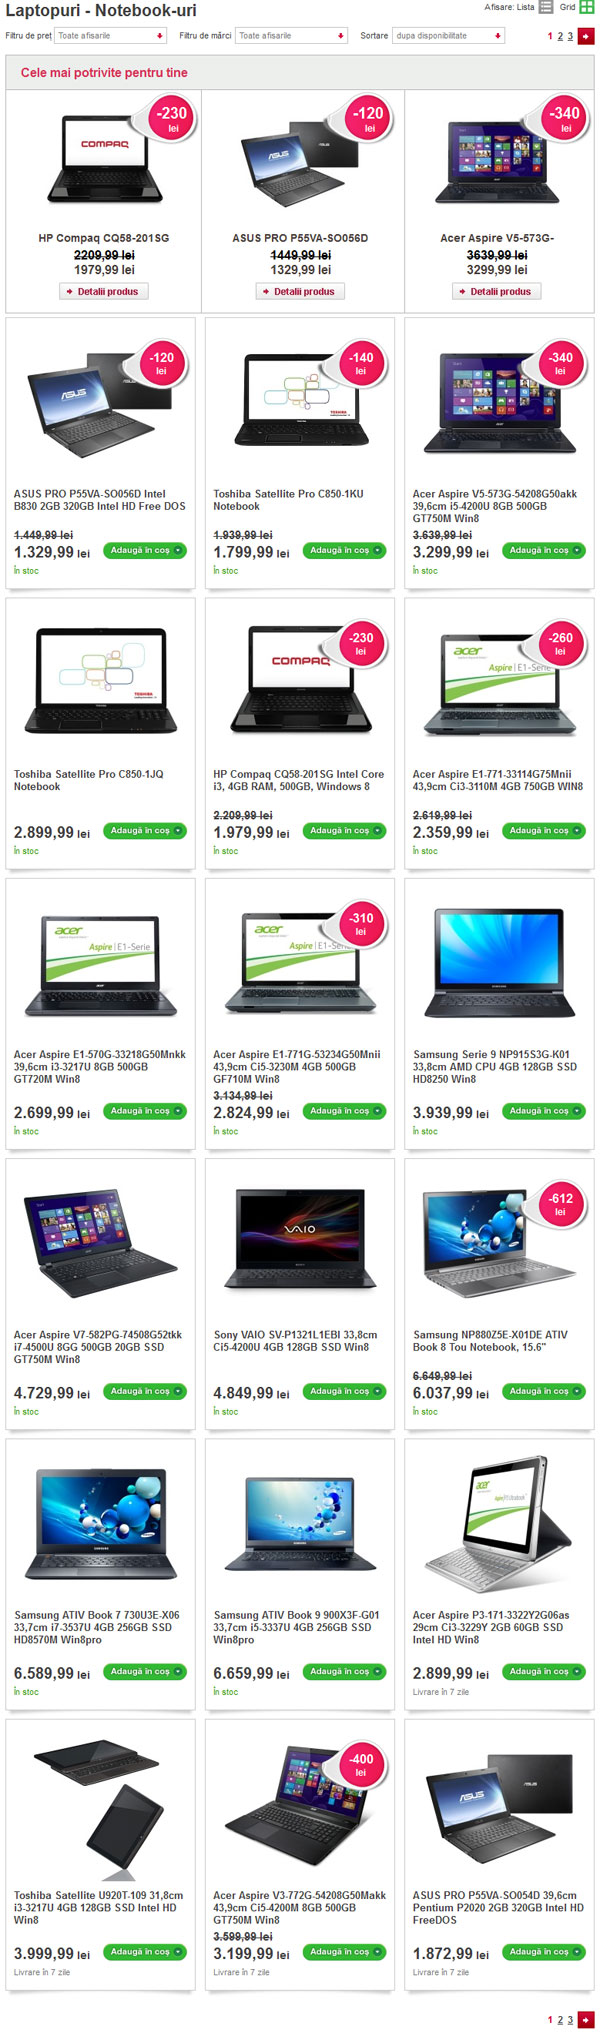 Laptop Black Friday 2013